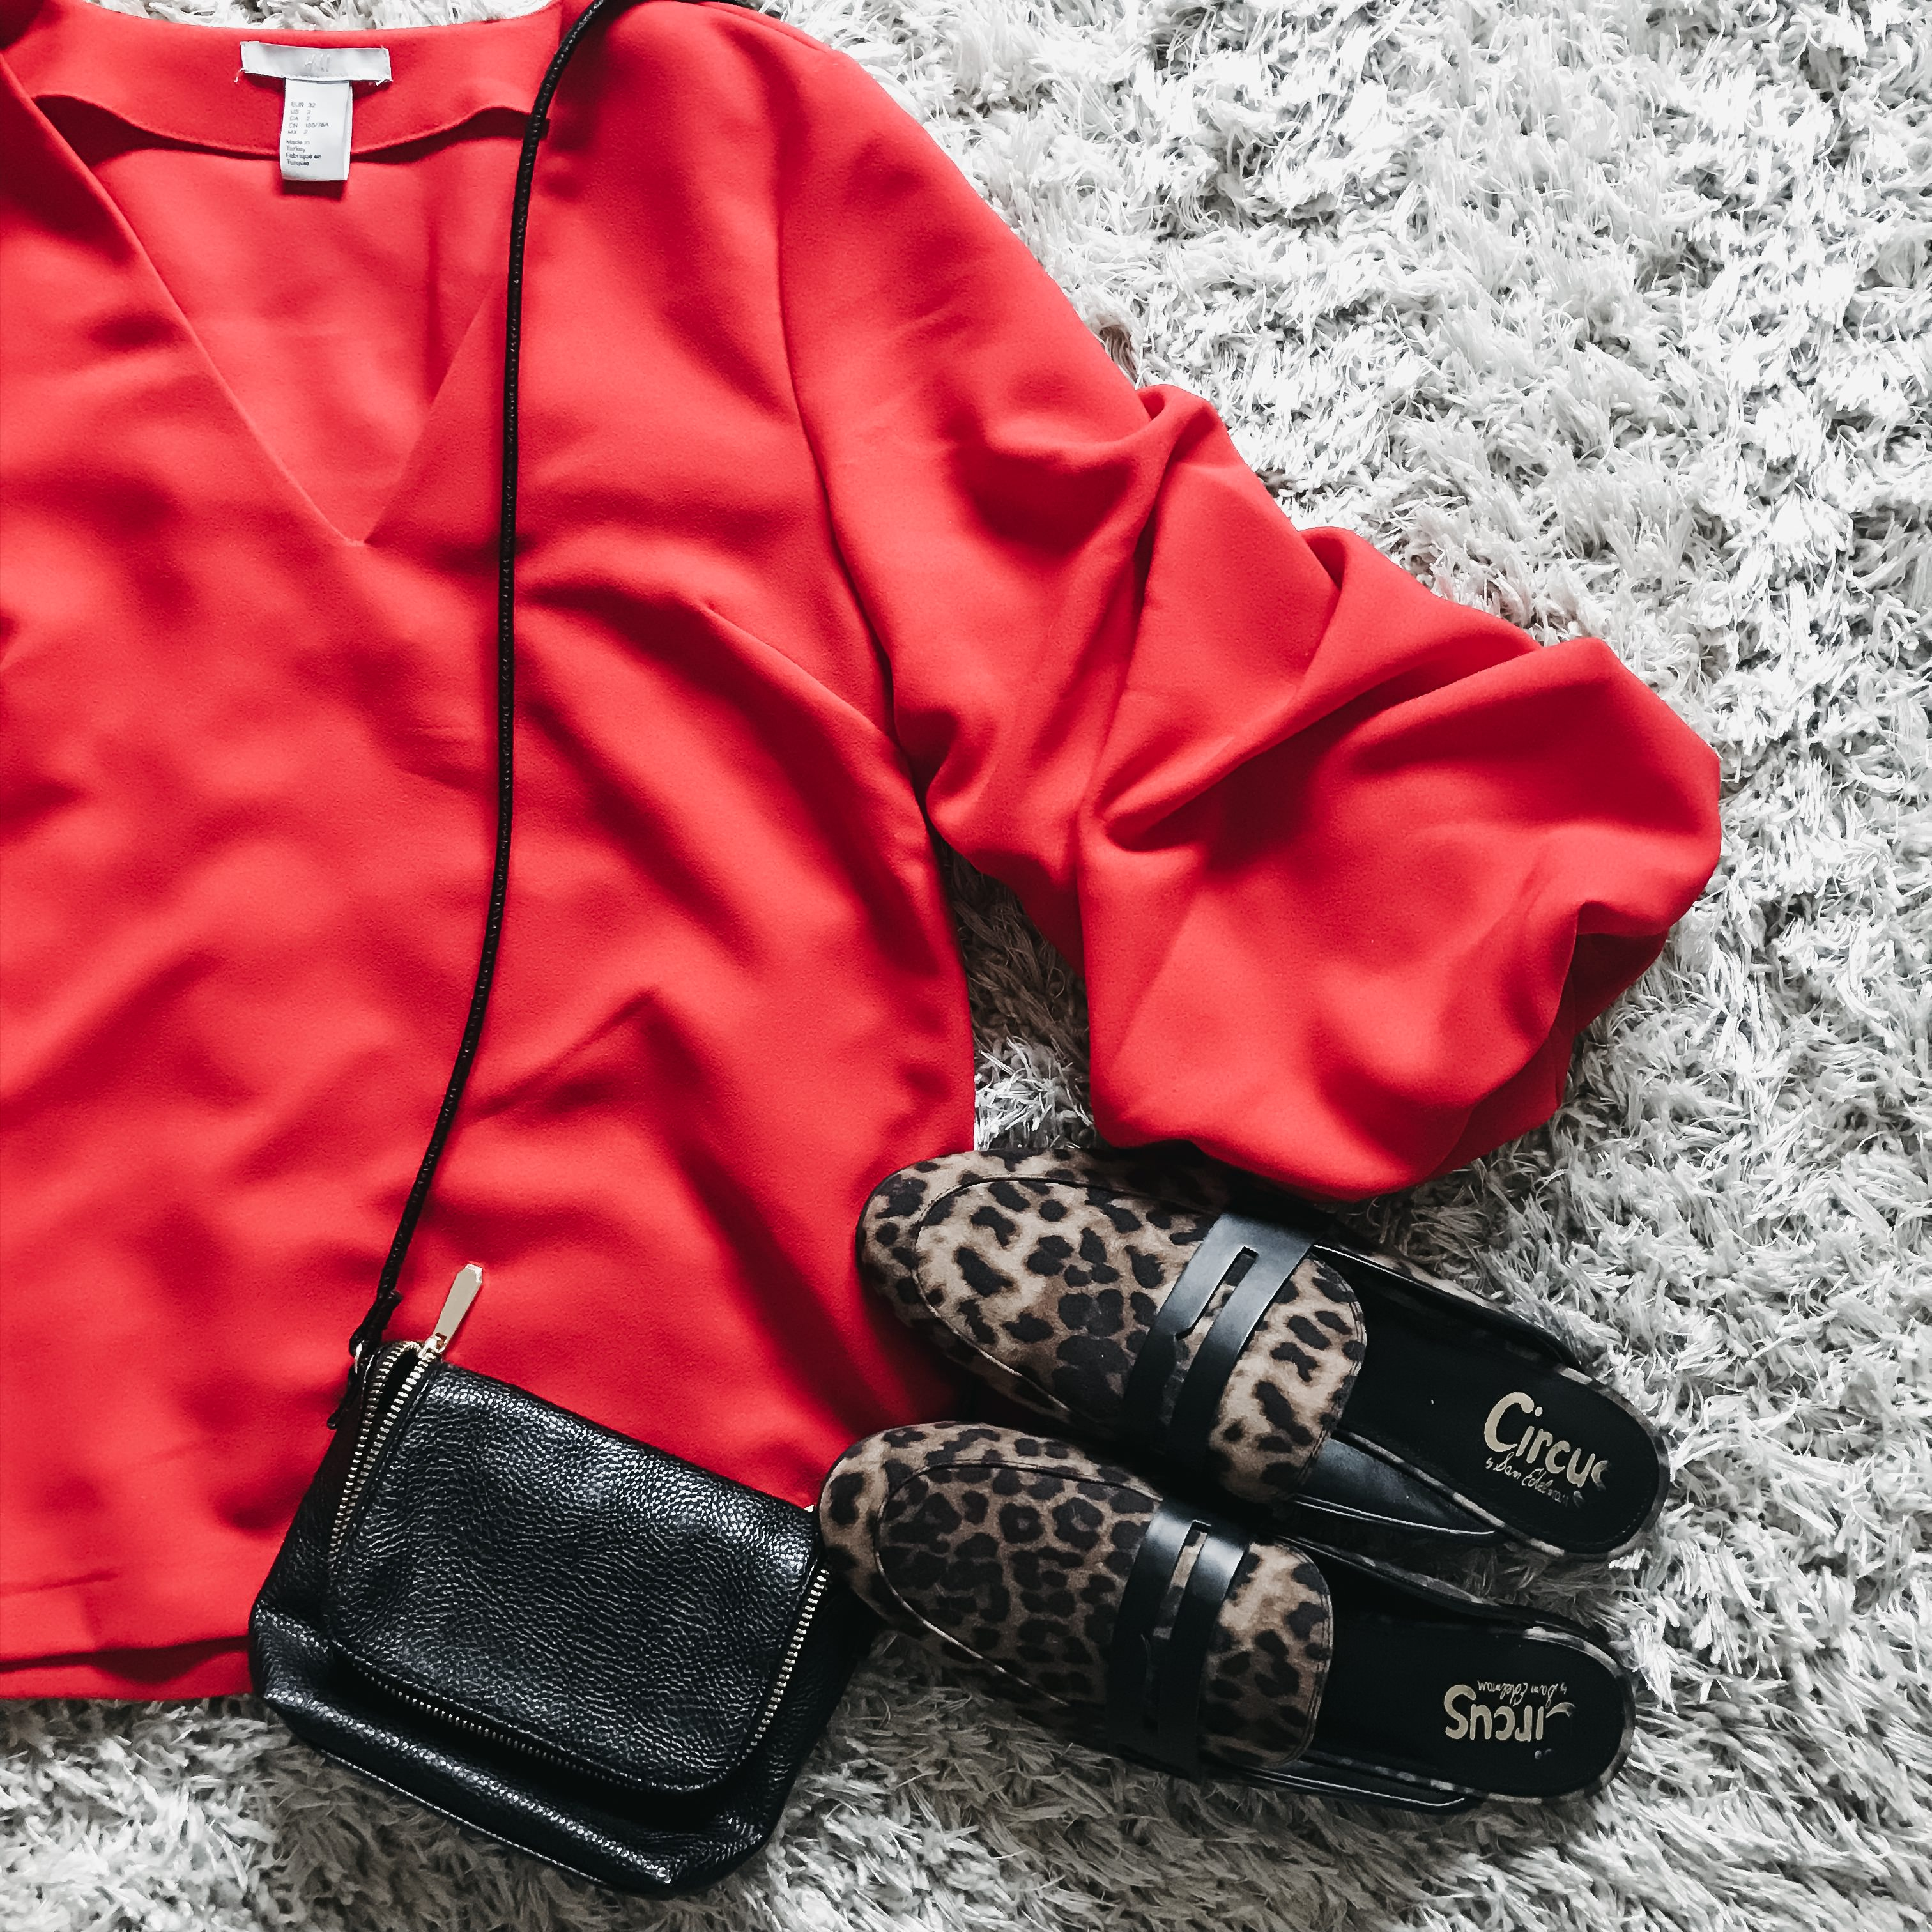 5 Elements of a Chic Wardrobe 1